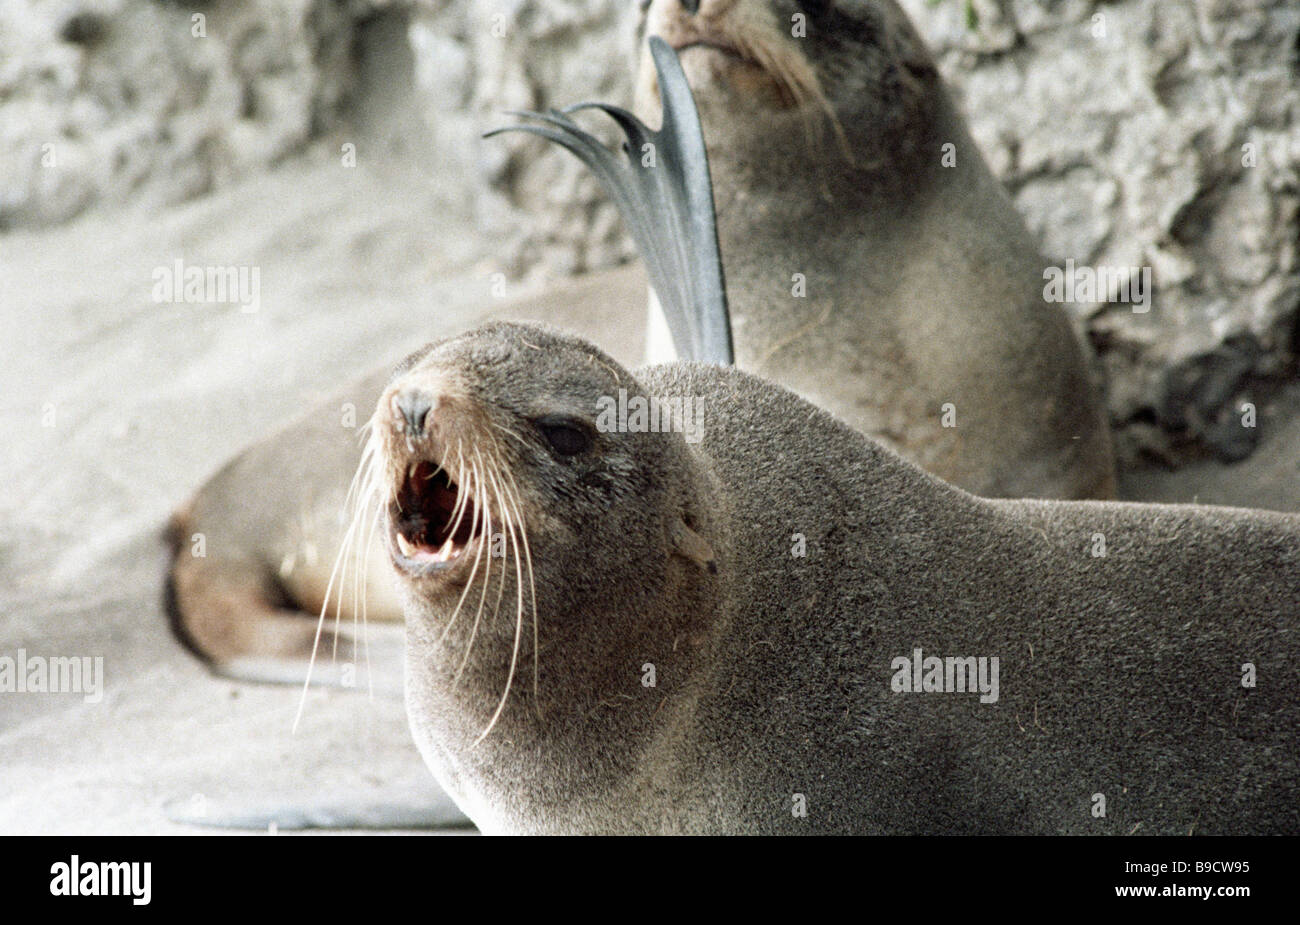 Fur seals Commander Islands - Stock Image